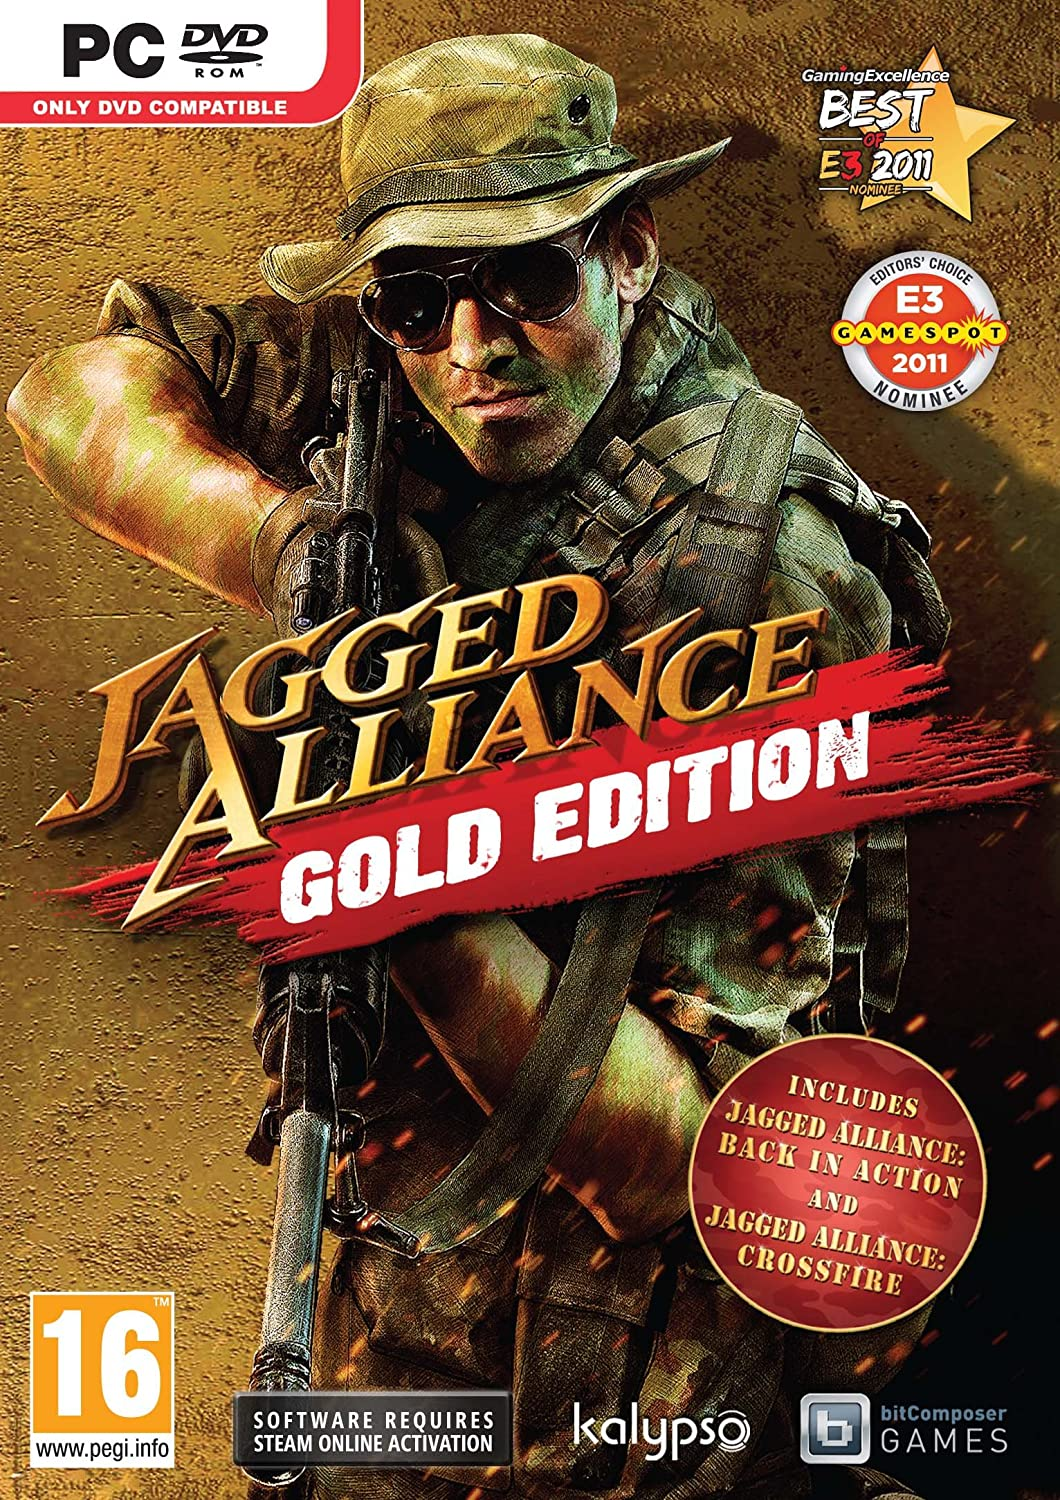 Jagged Alliance Gold Edition Game PC [PC]